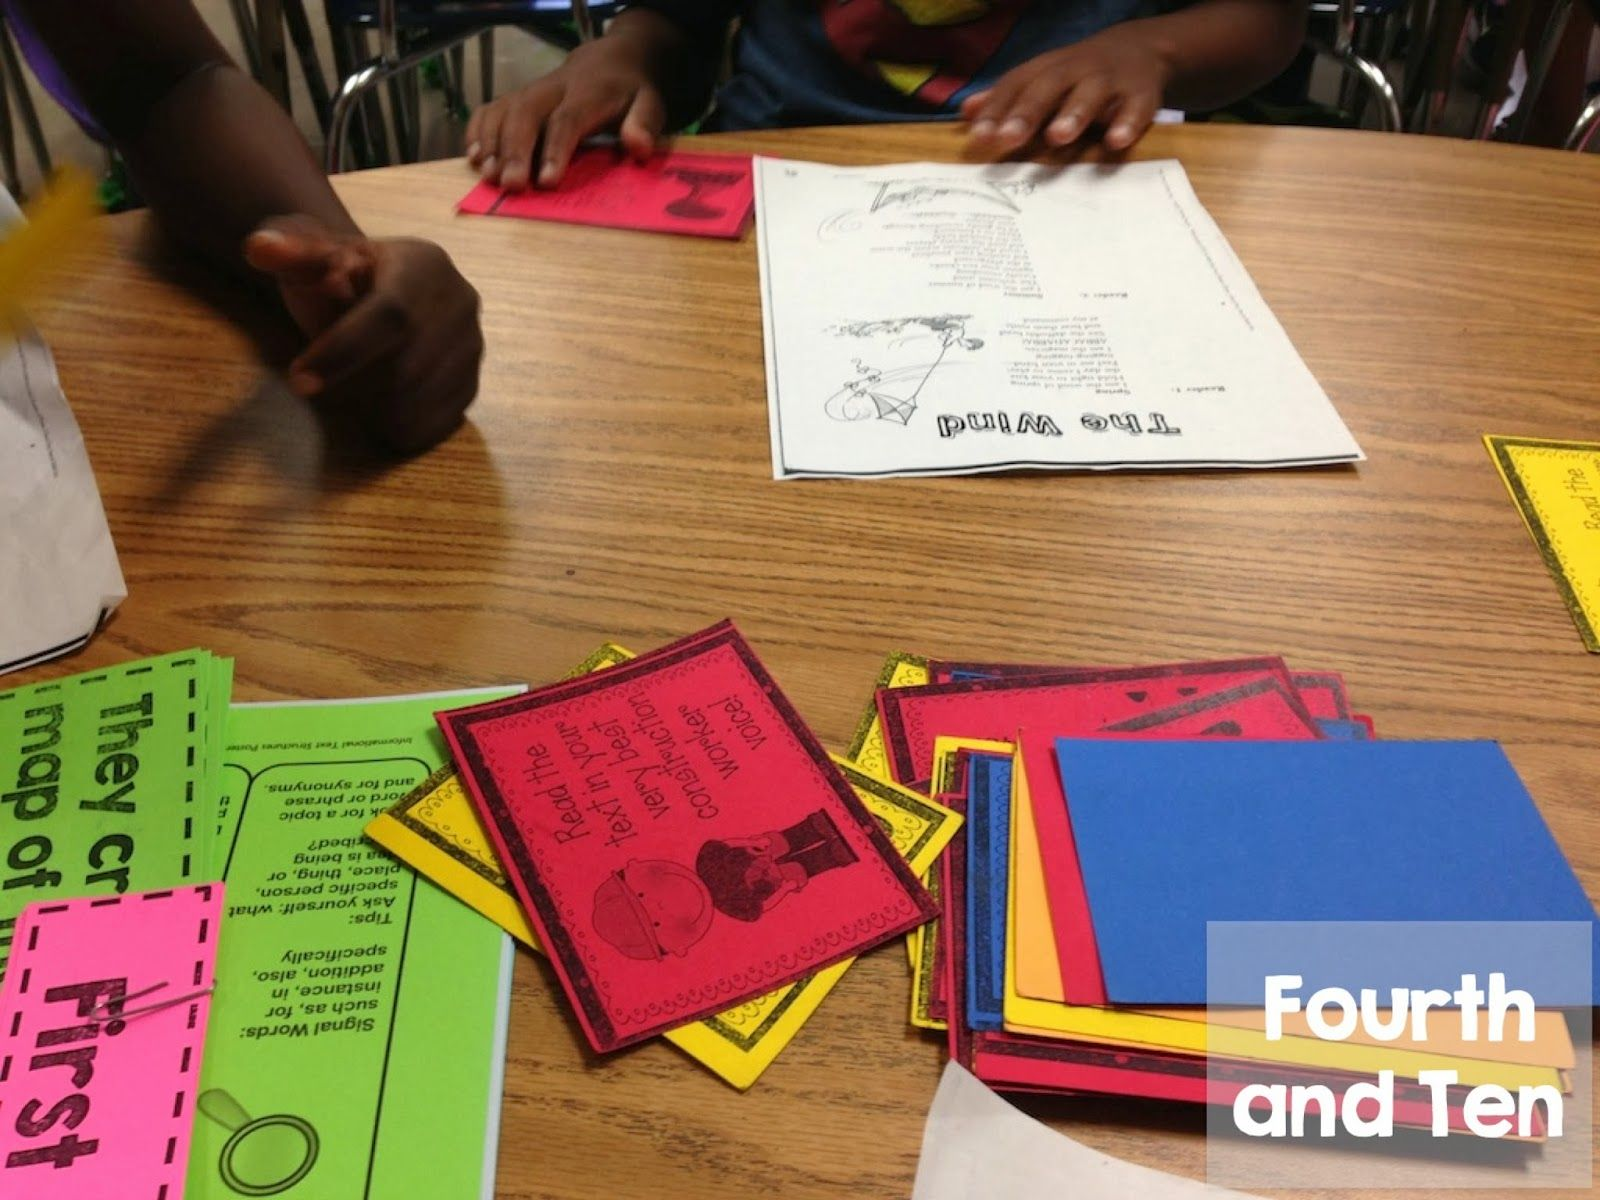 Daily 5 Set Up In A 4th Grade Classroom